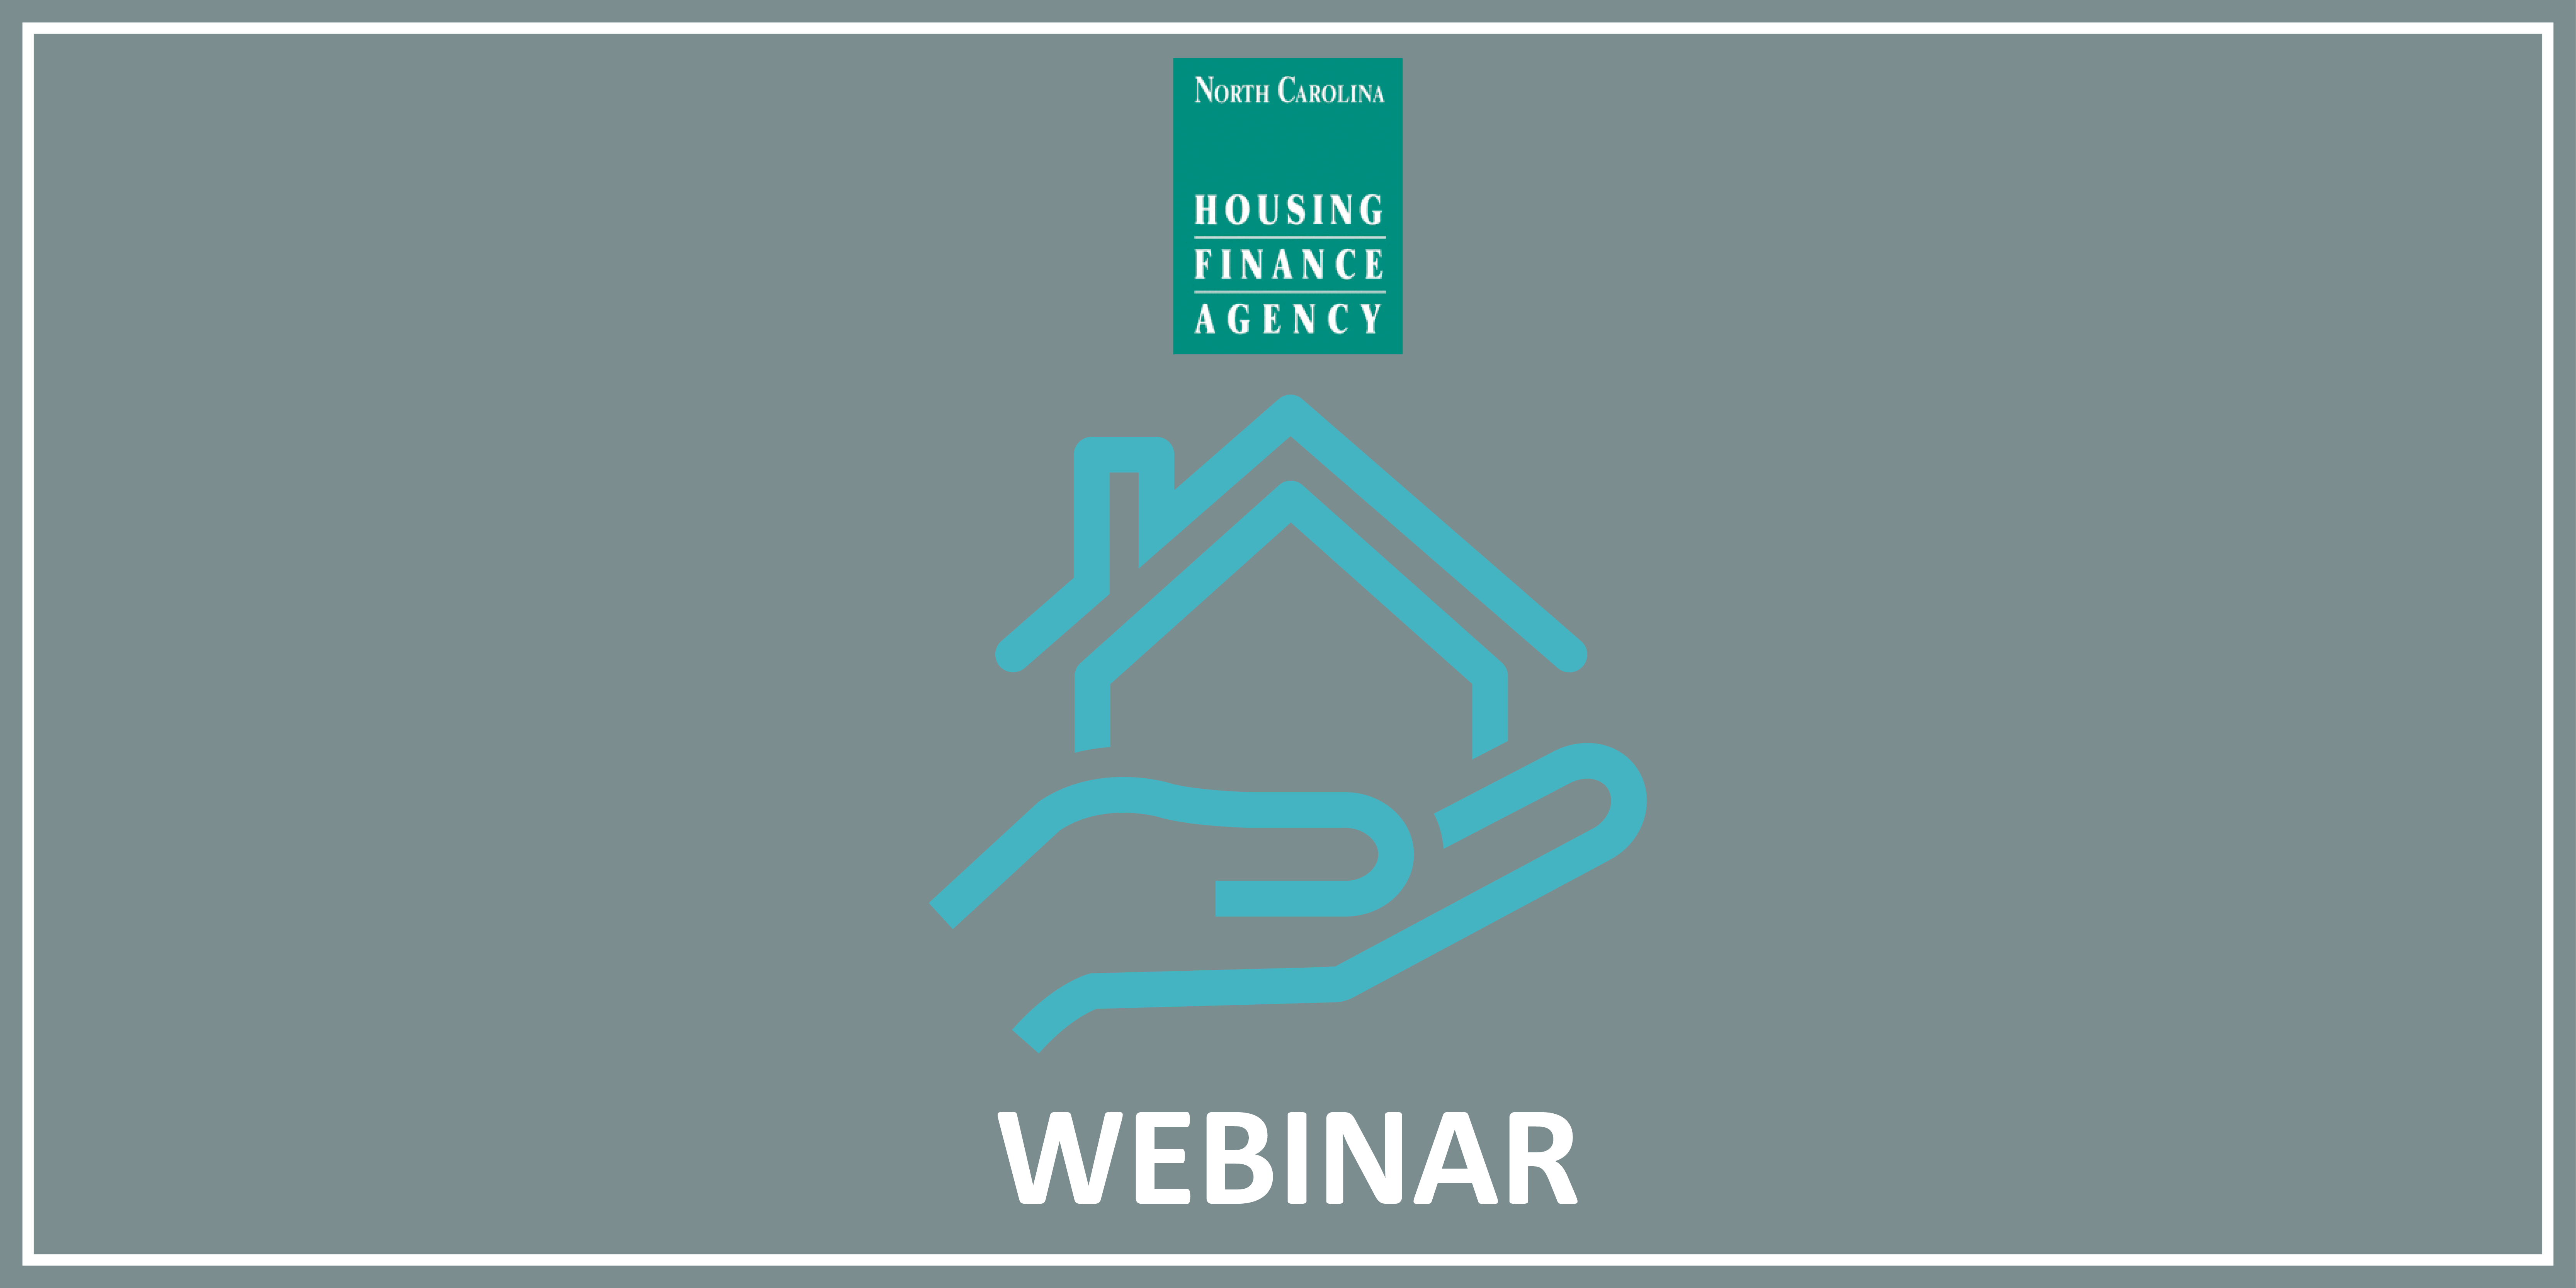 Blue outline of house in hand with WEBINAR below